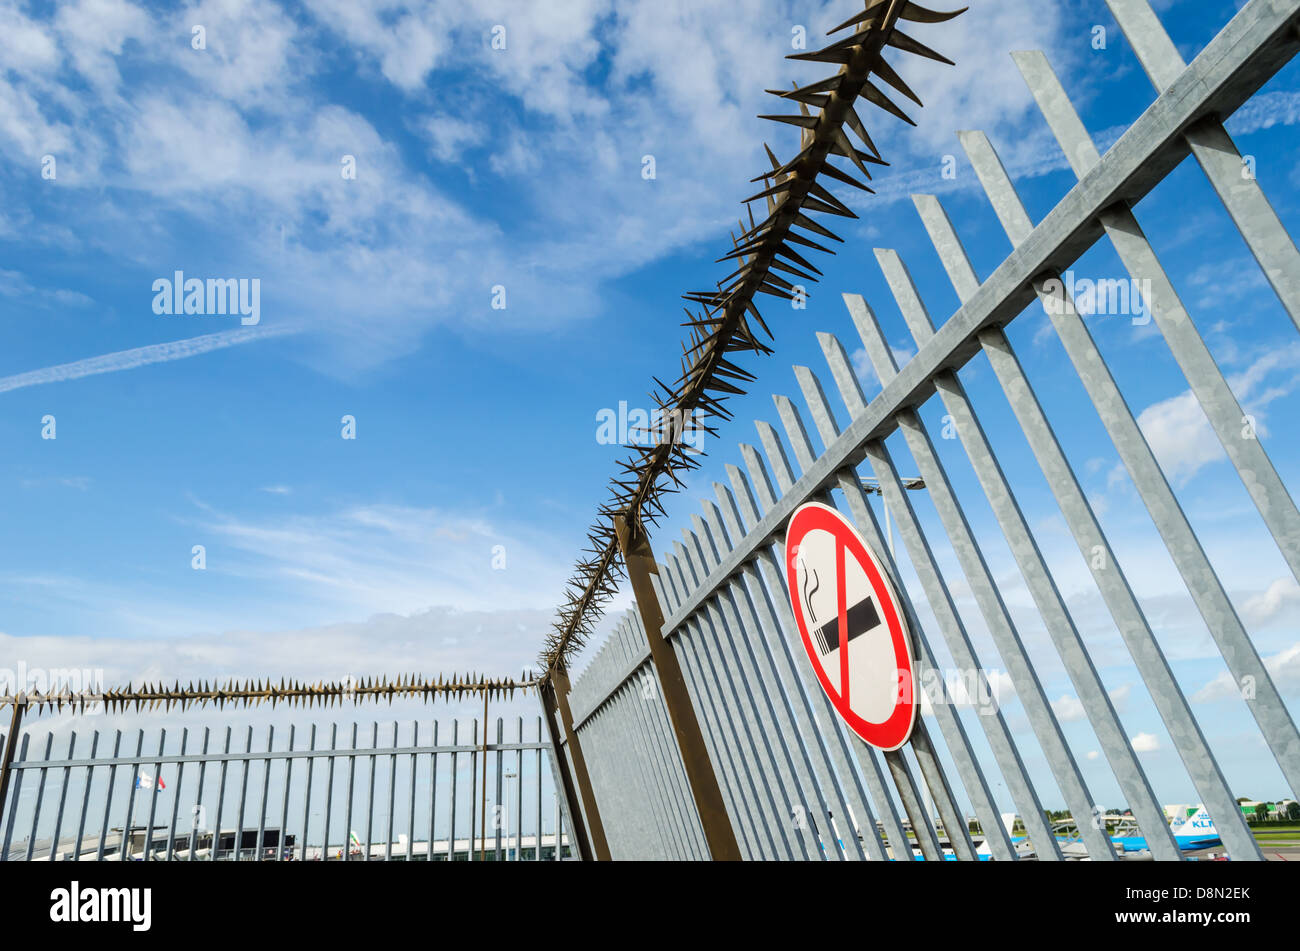 no smoking sign and a security fence at amsterdam airport schiphol amsterdam nl